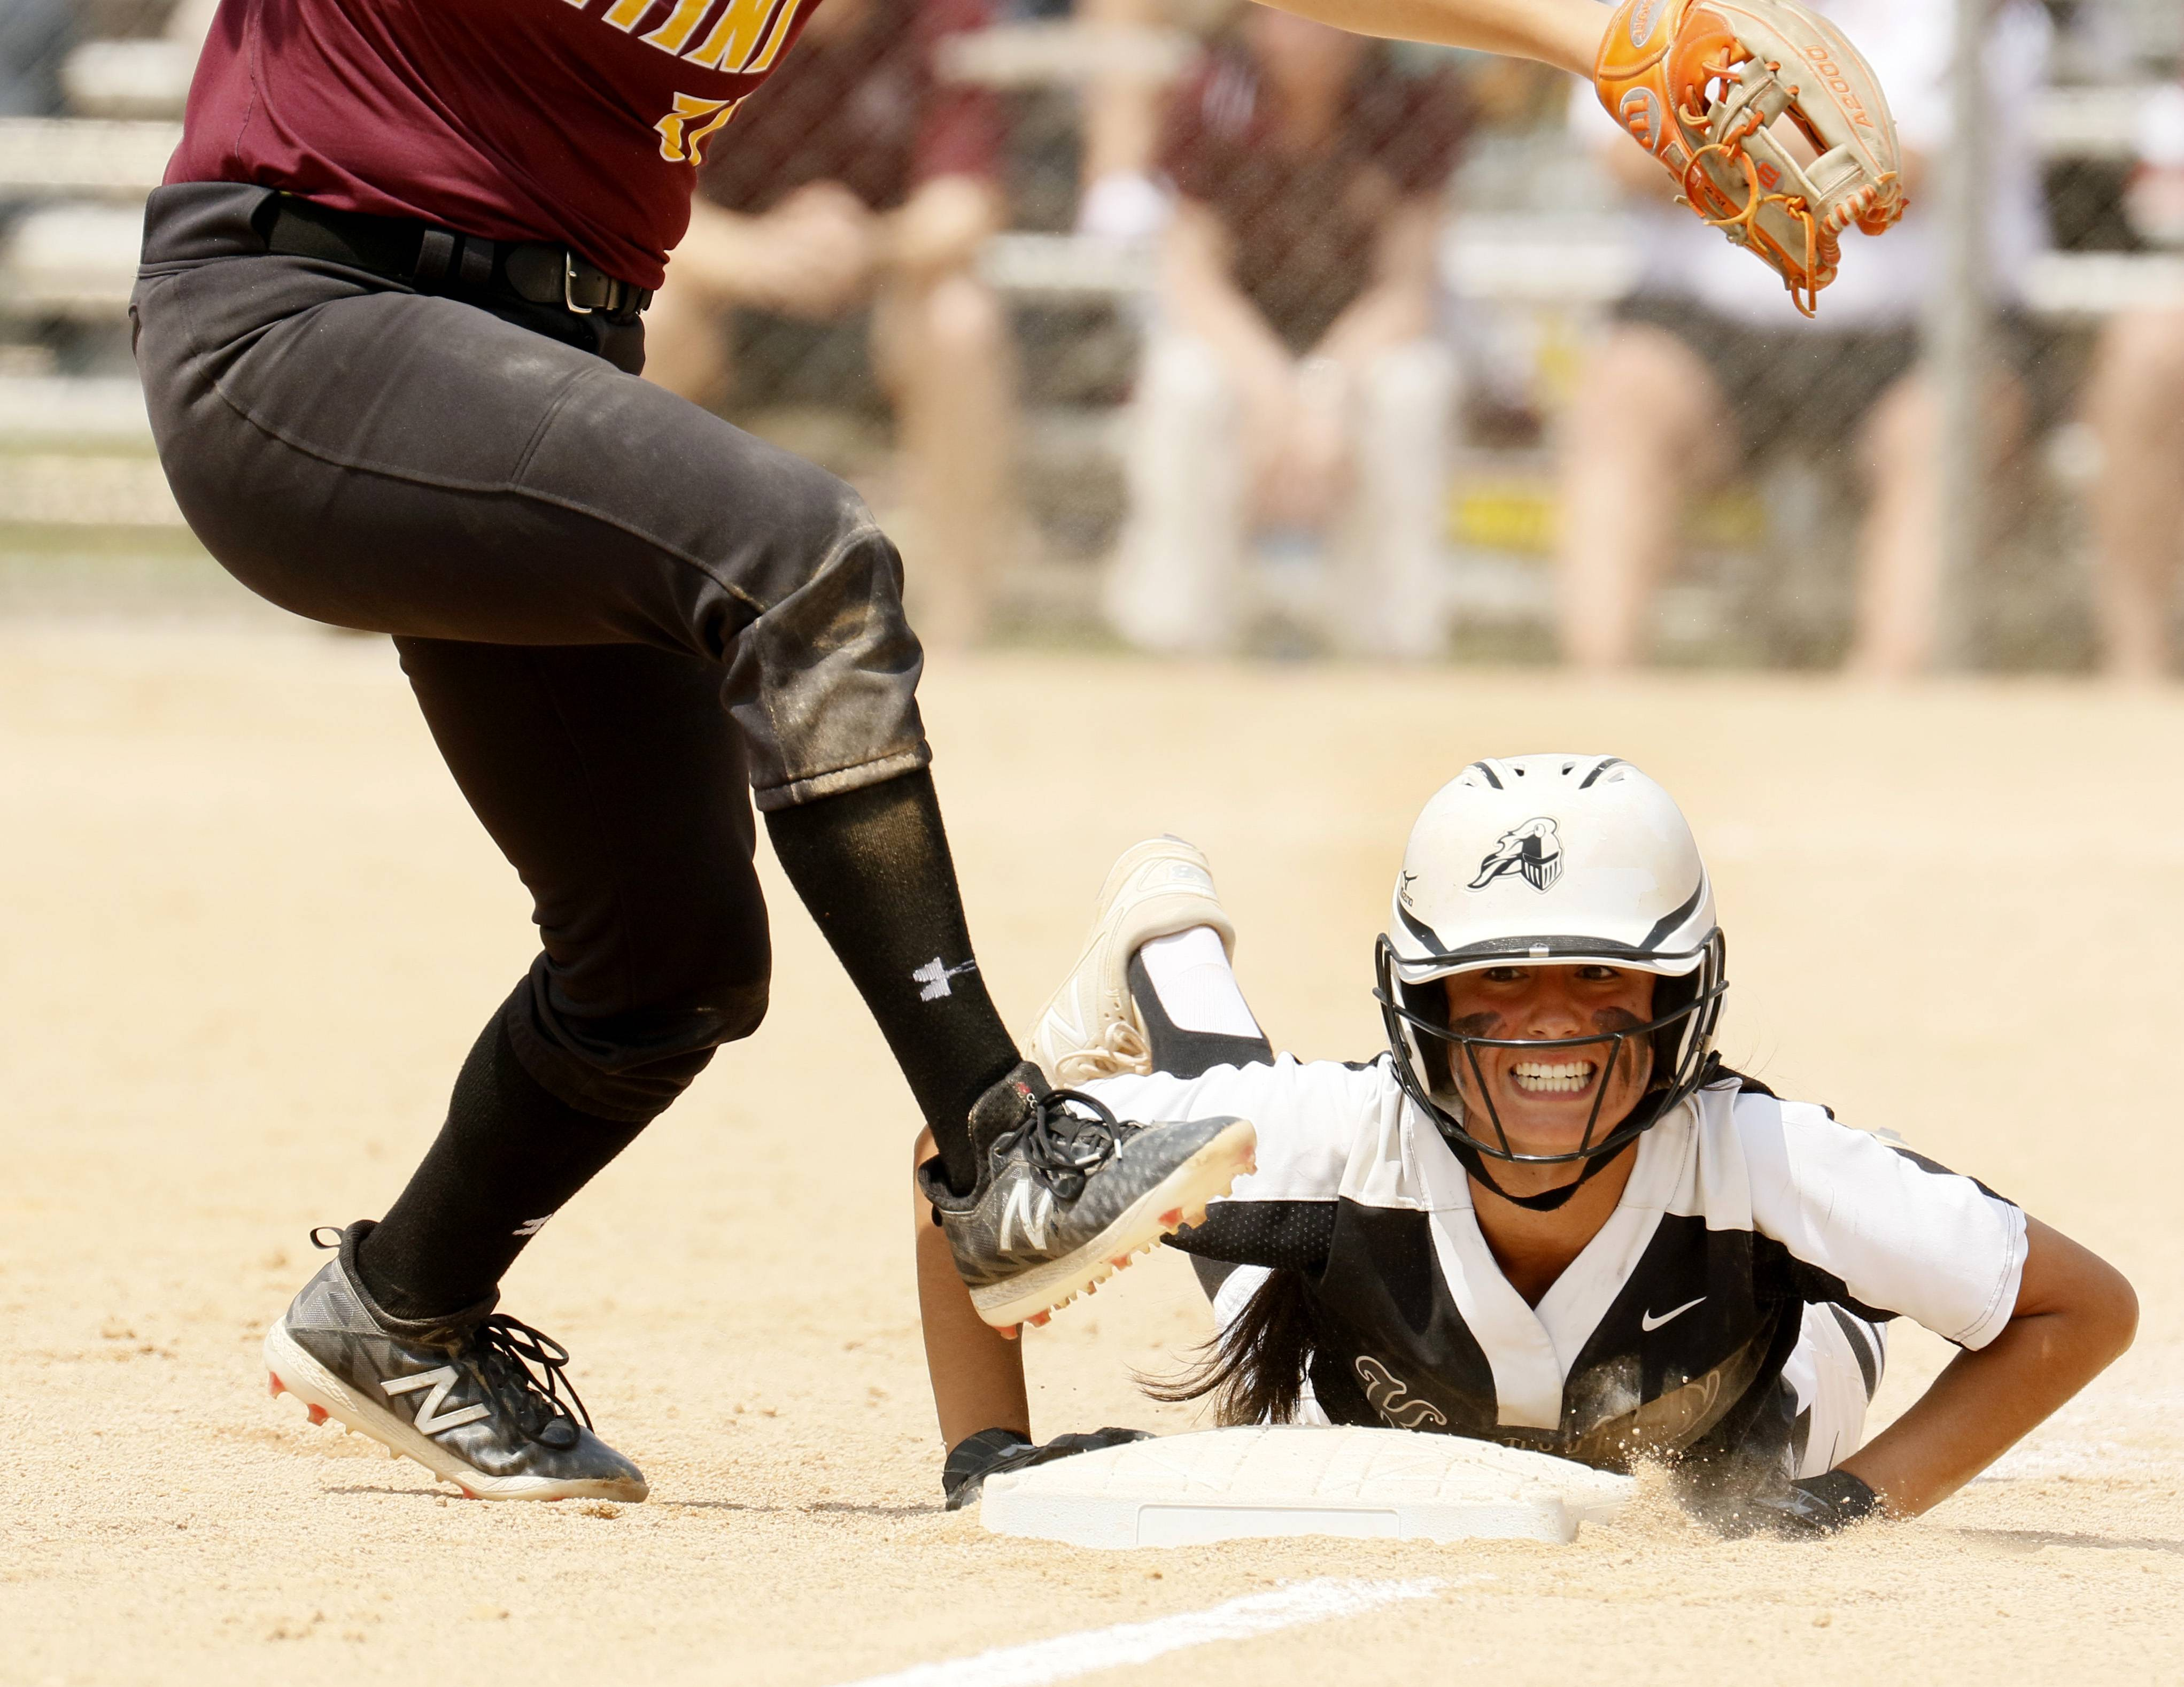 Kaneland's Donatela Sommesi slides back into third base and watches an errant throw fly down the left field line against Montini Catholic during the IHSA Class 3A state softball championship.